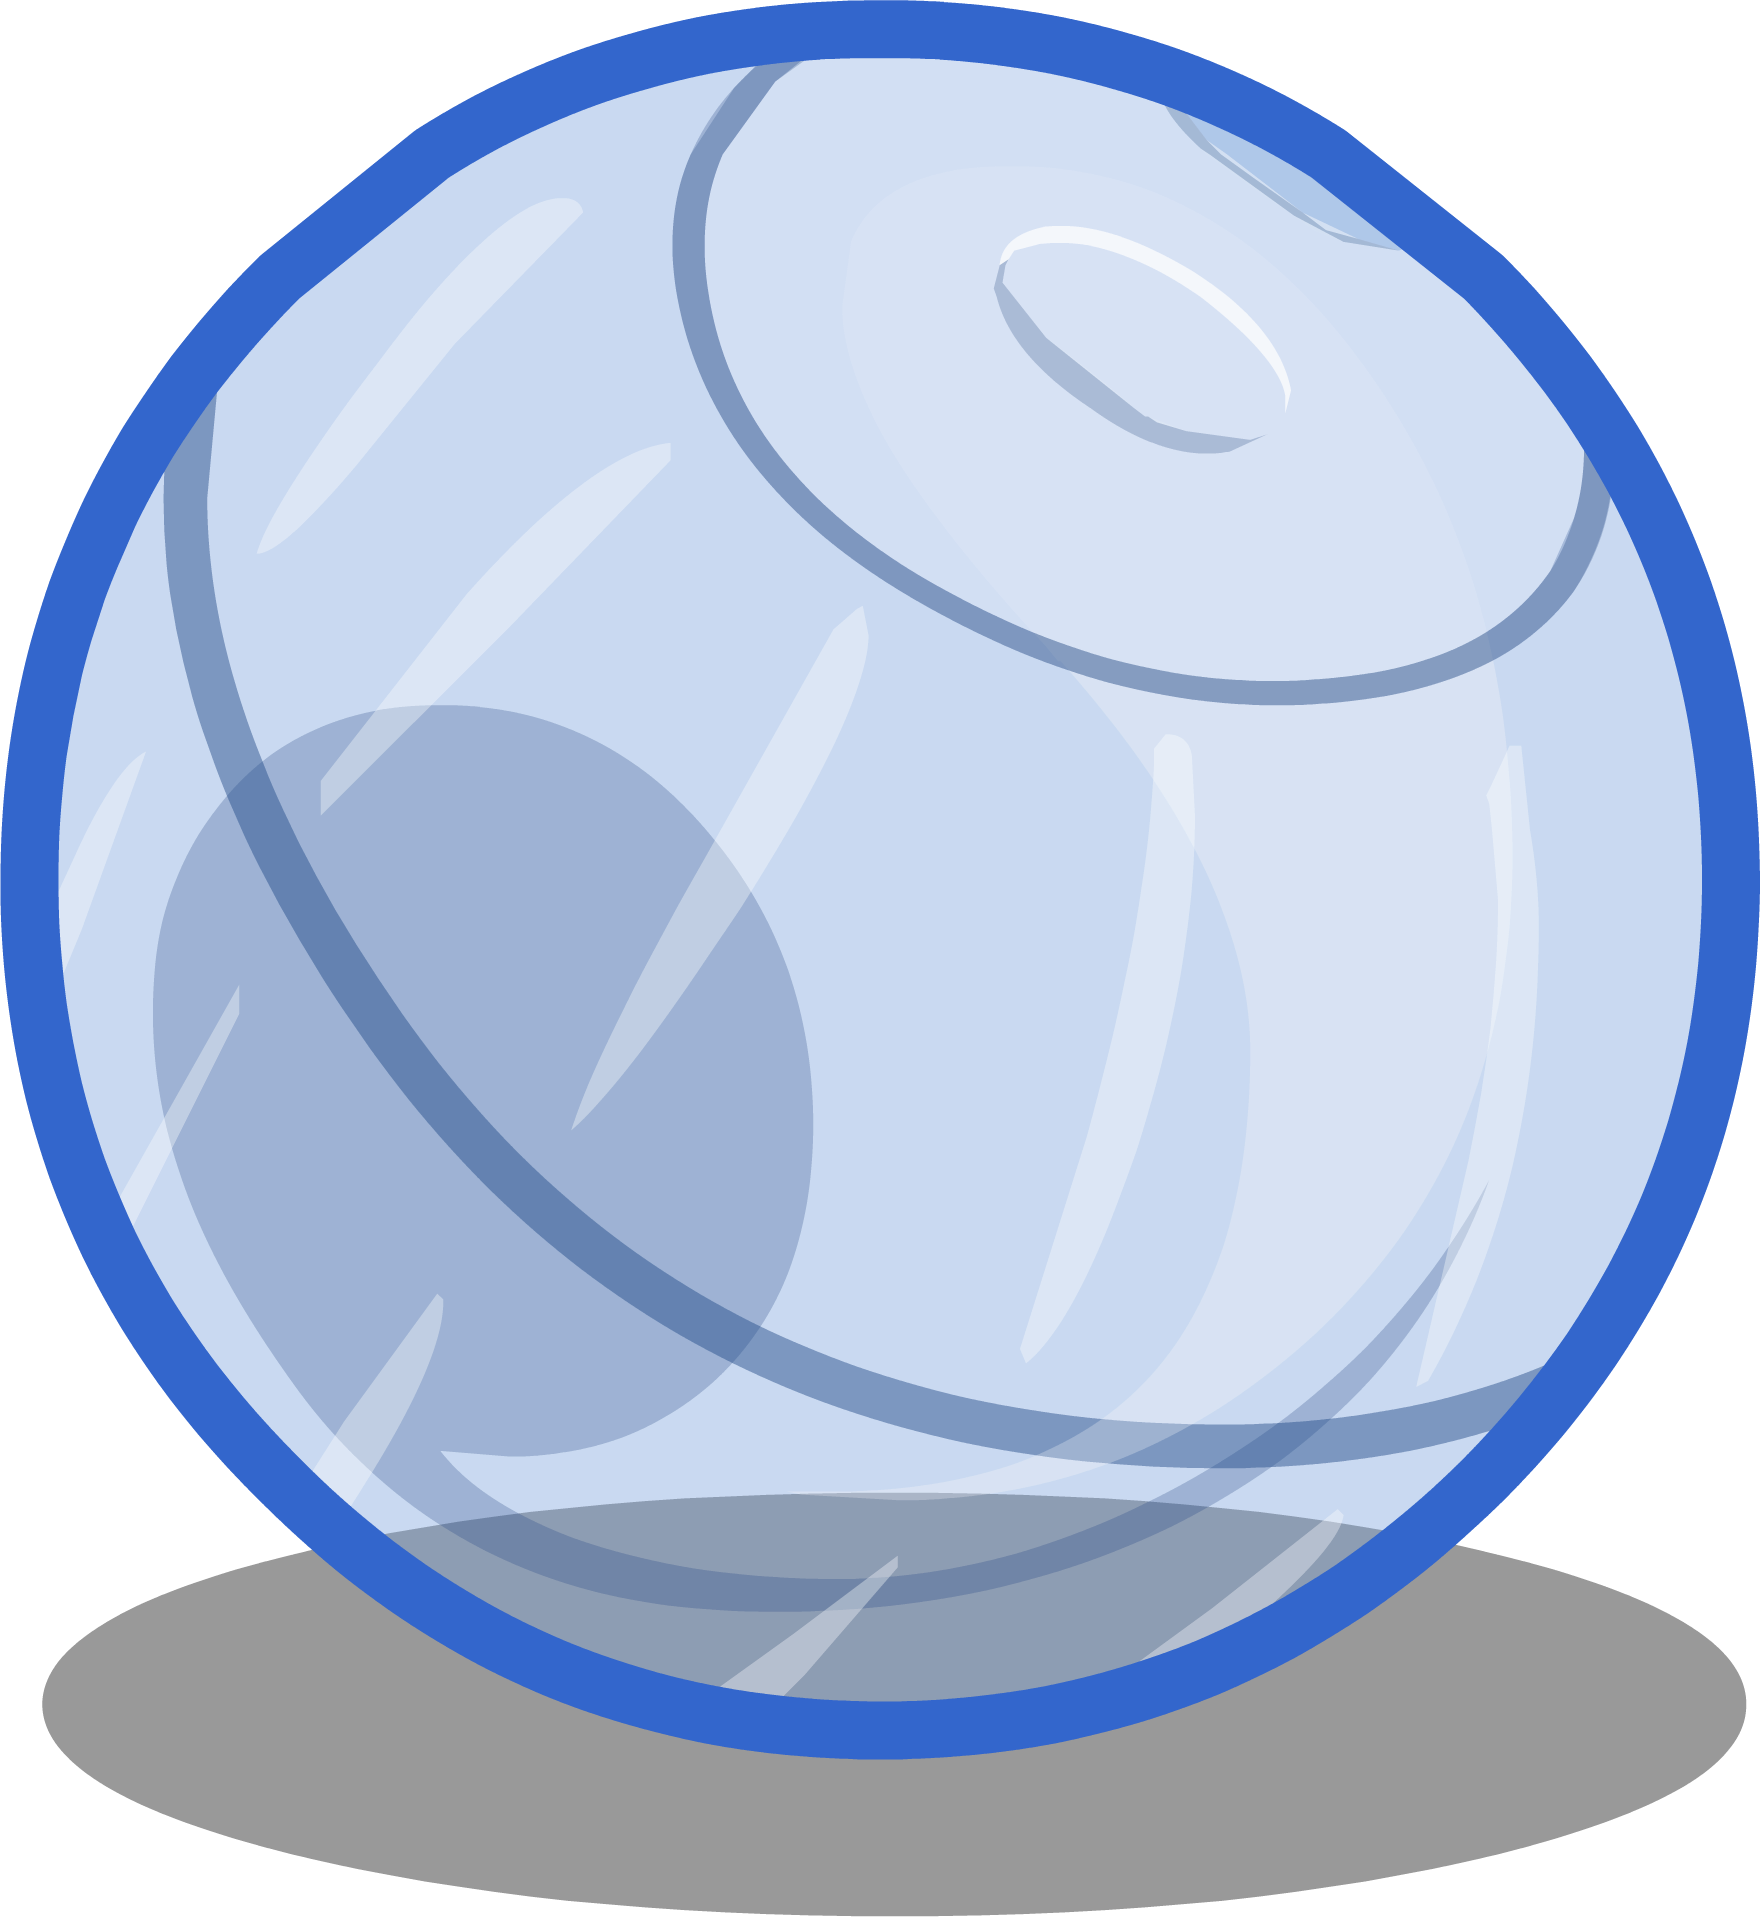 Ball sprite png. Image puffle club penguin